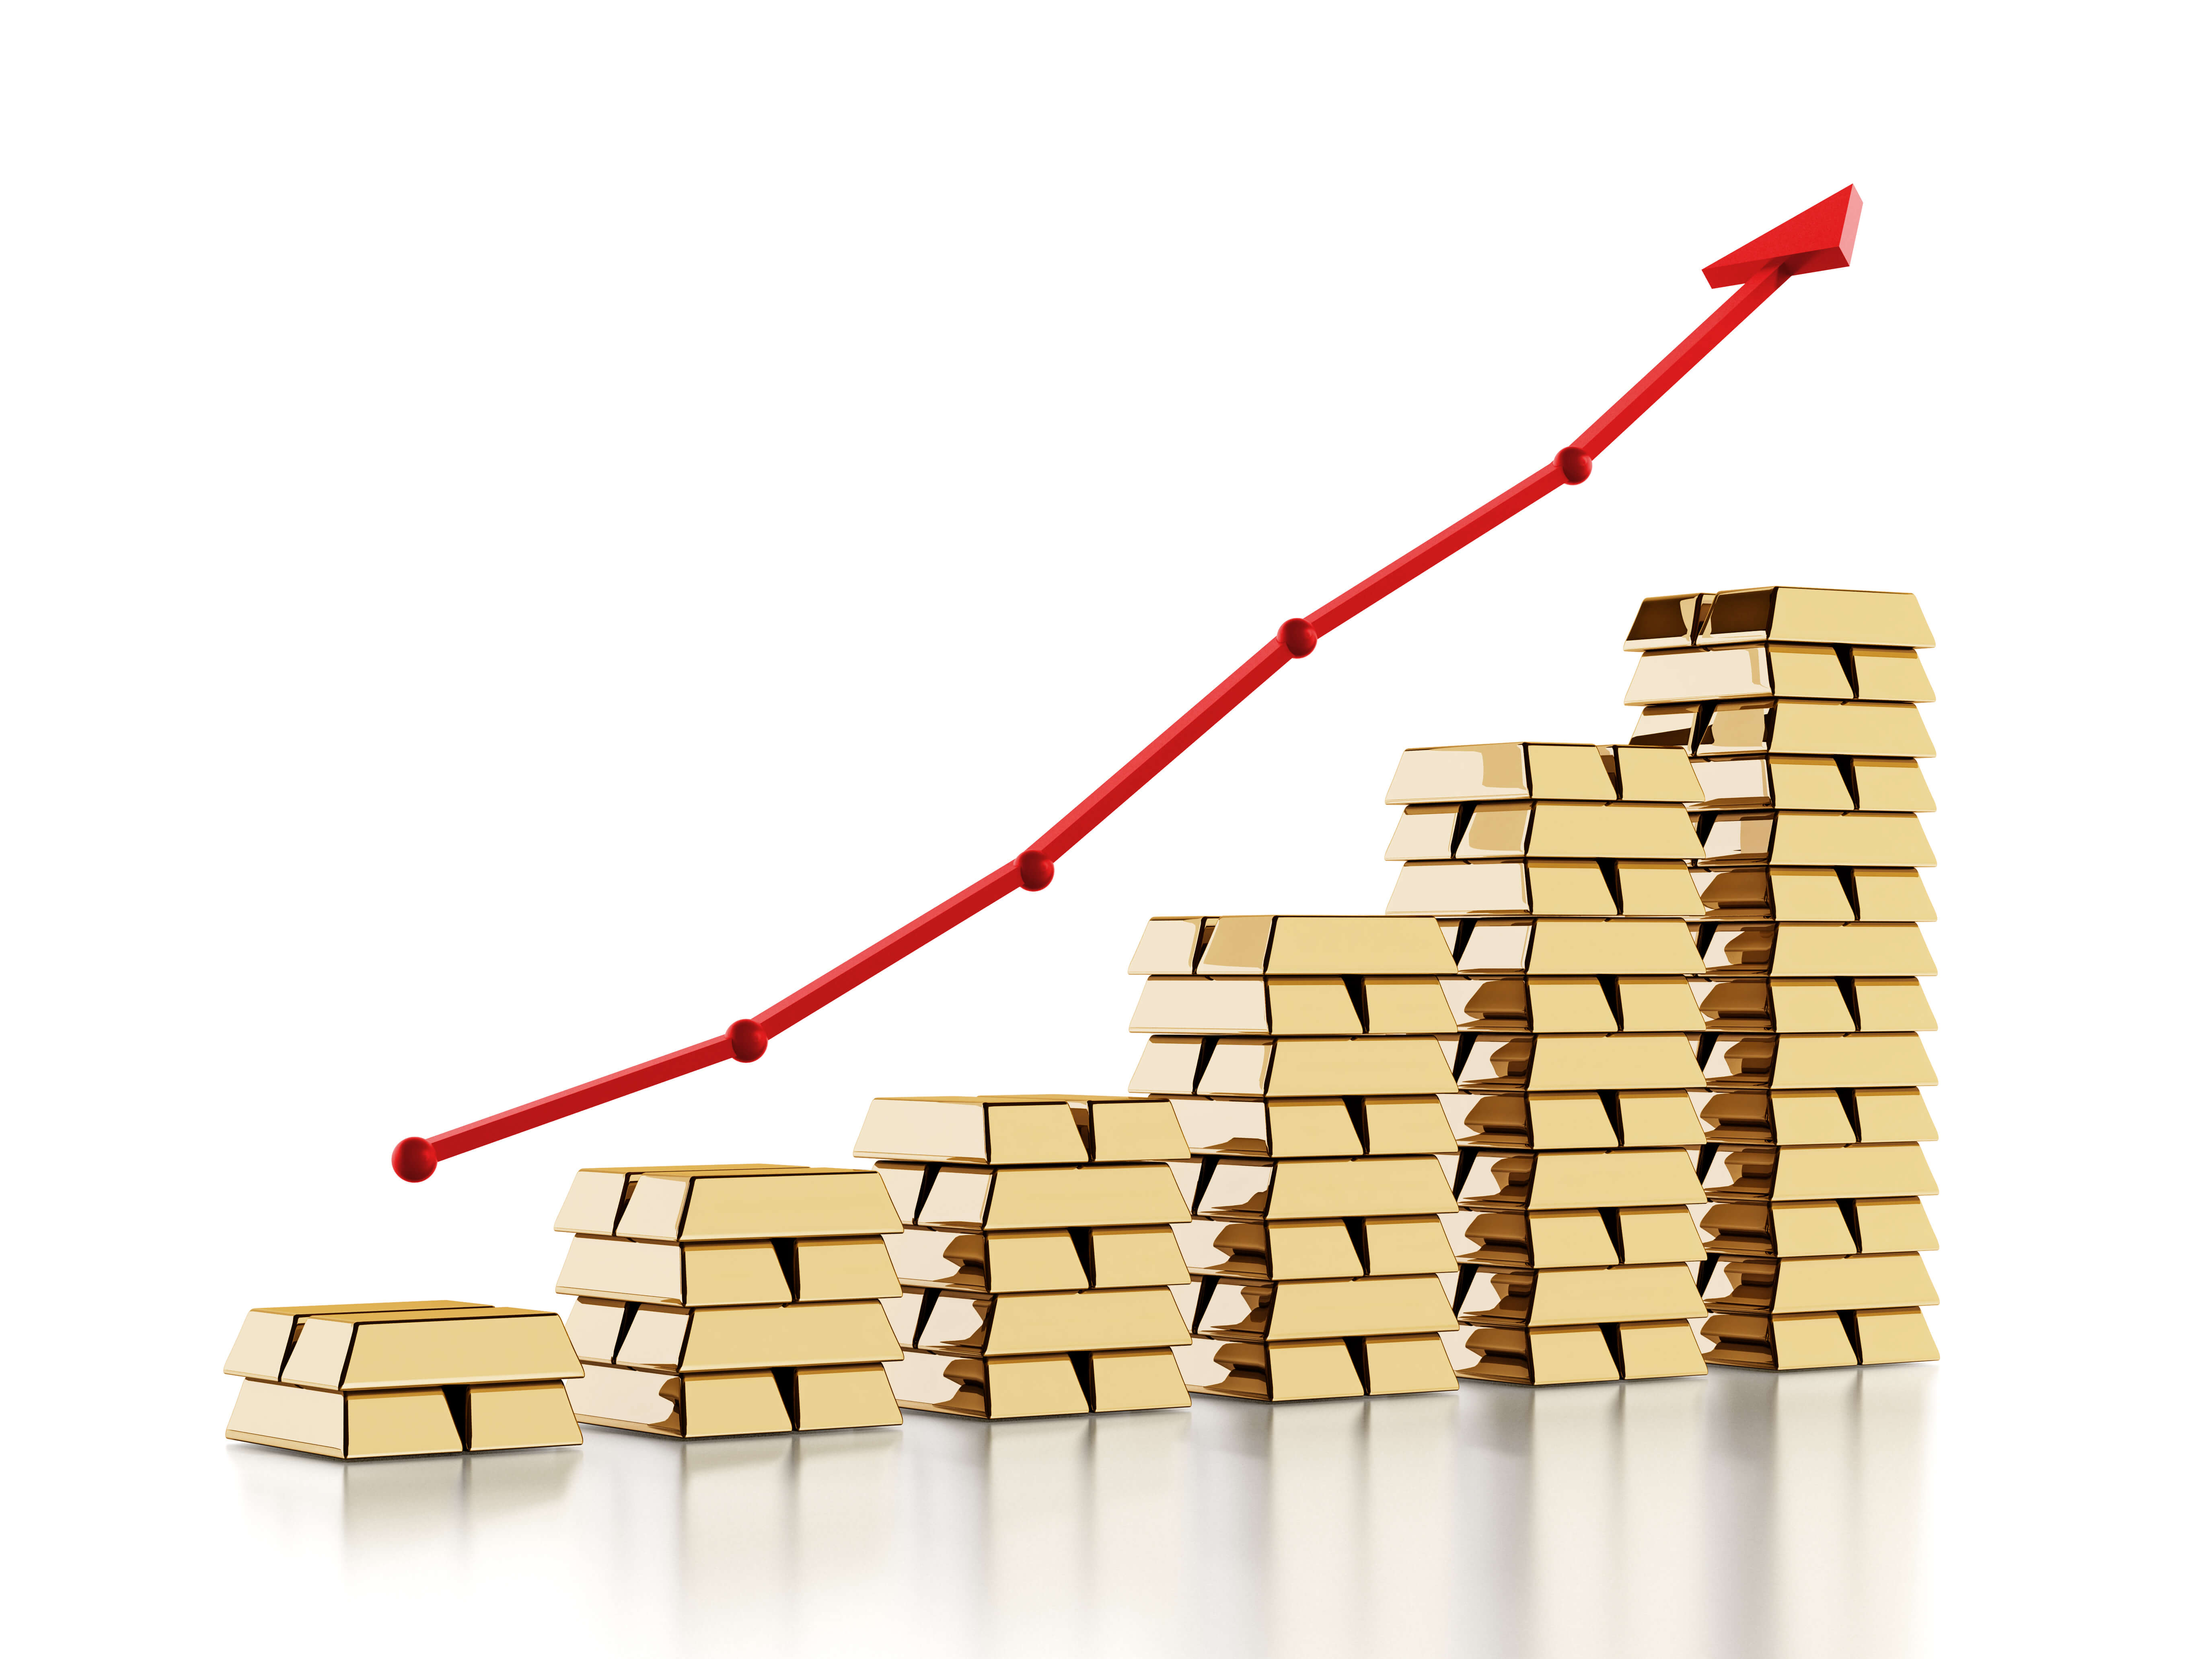 Spot price of gold is increasing